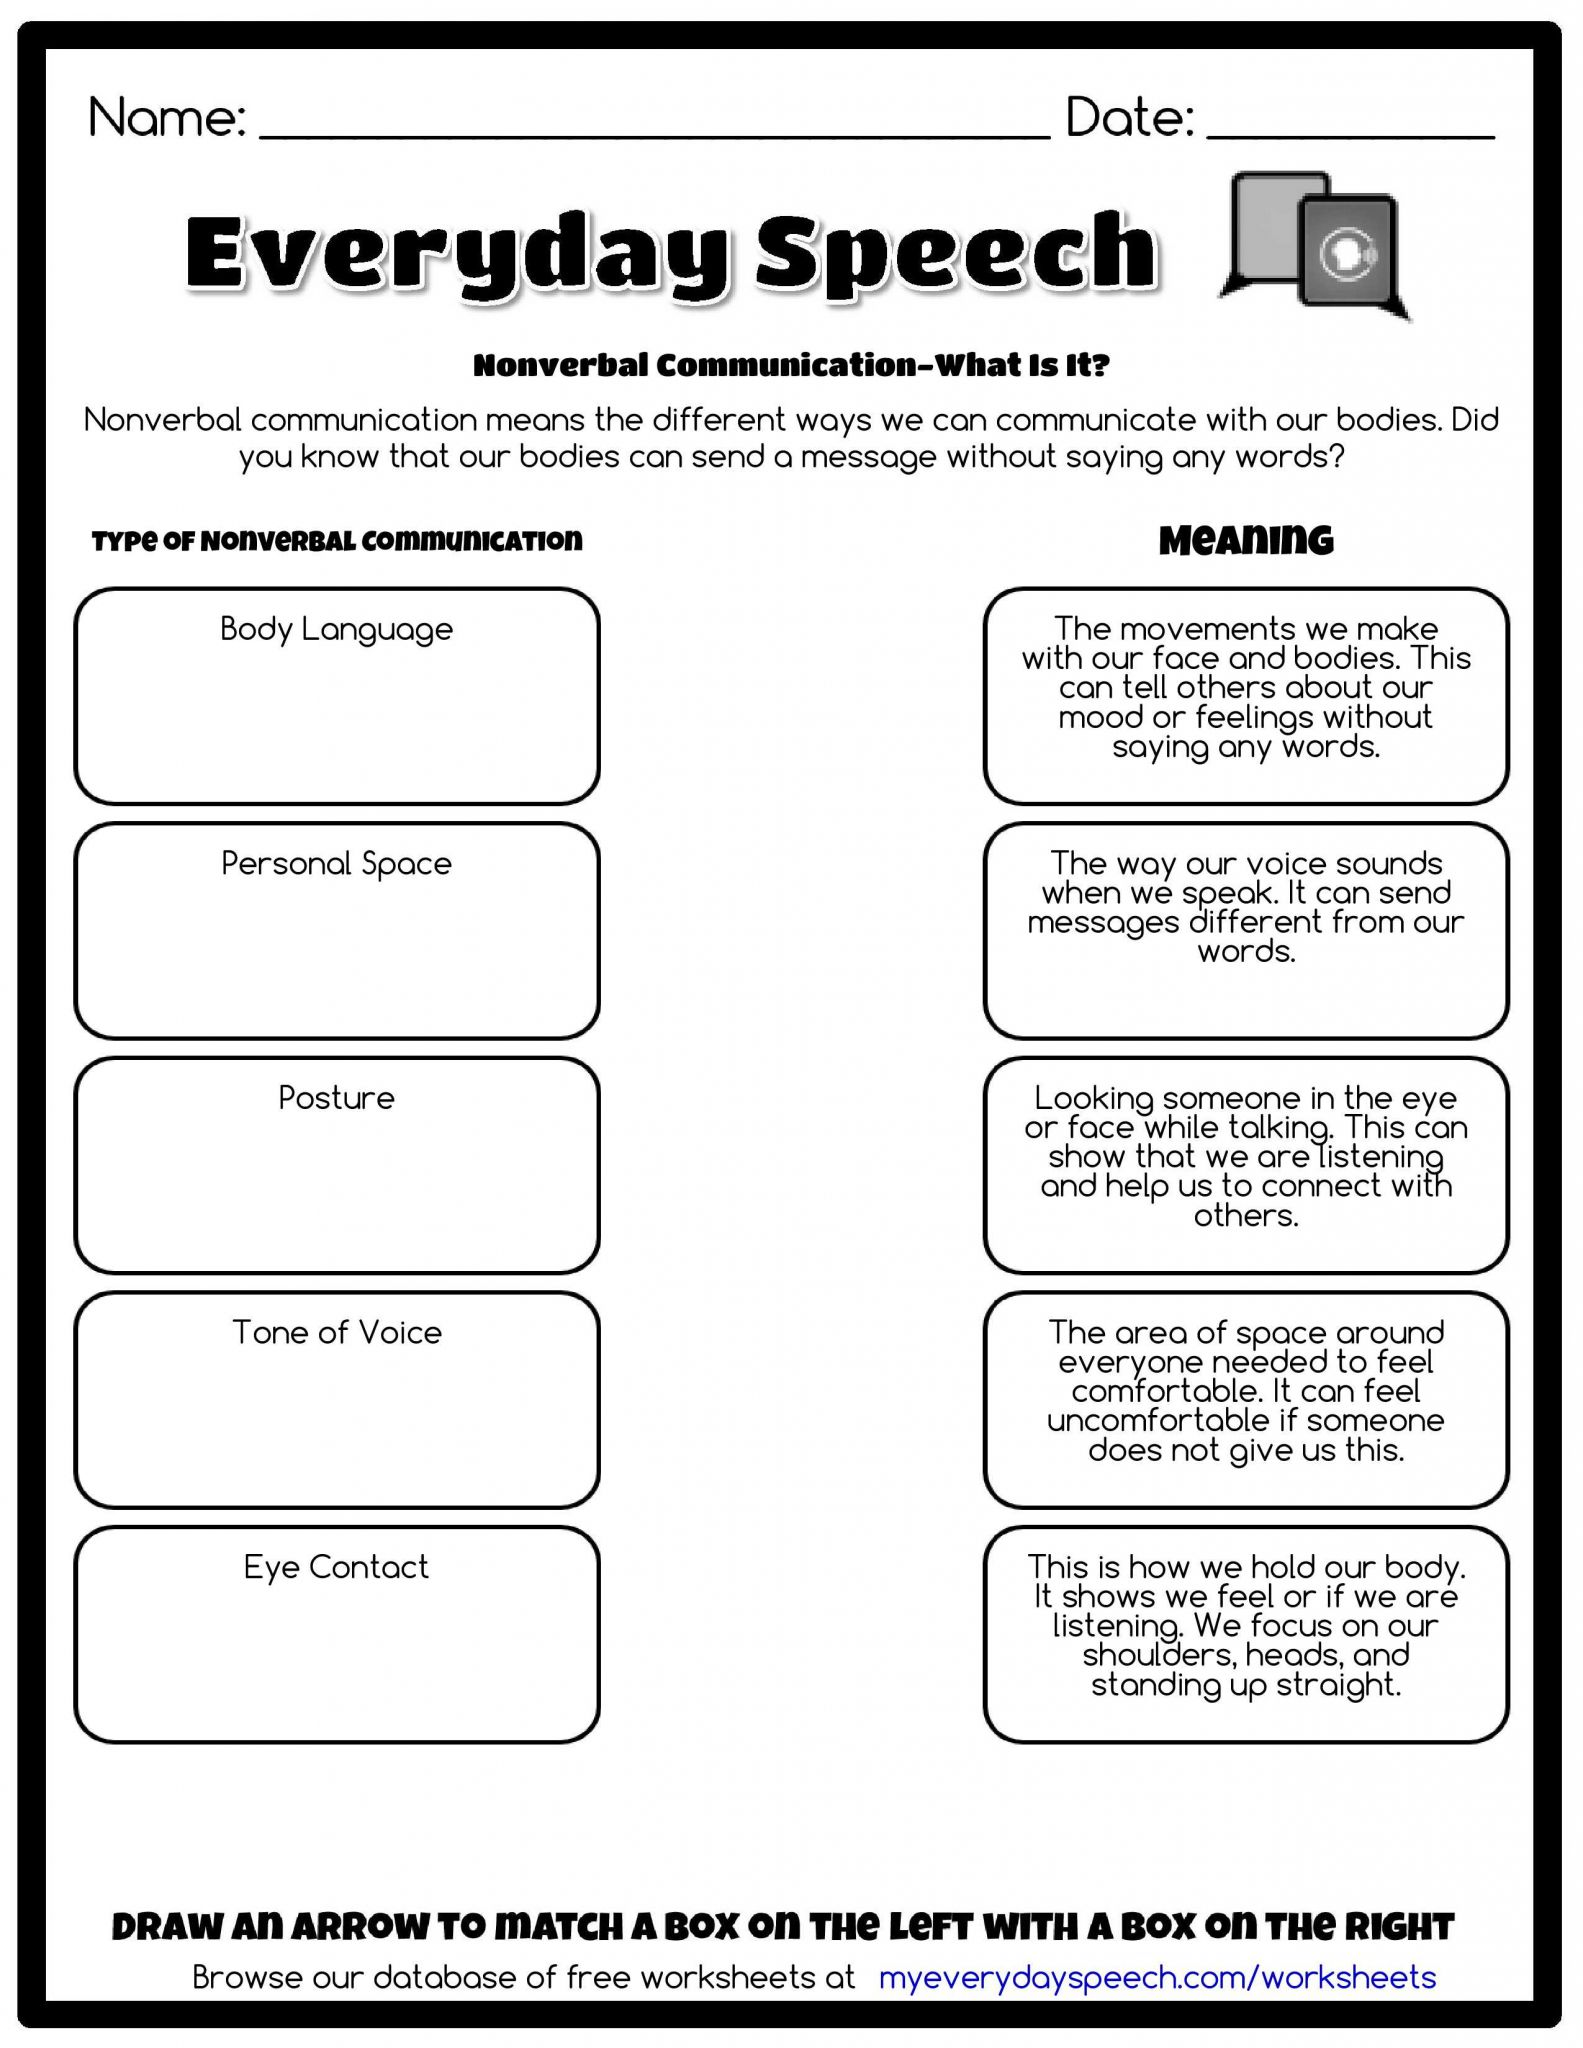 Positive Psychology Worksheets with Free Worksheets Library Download and Print Worksheets